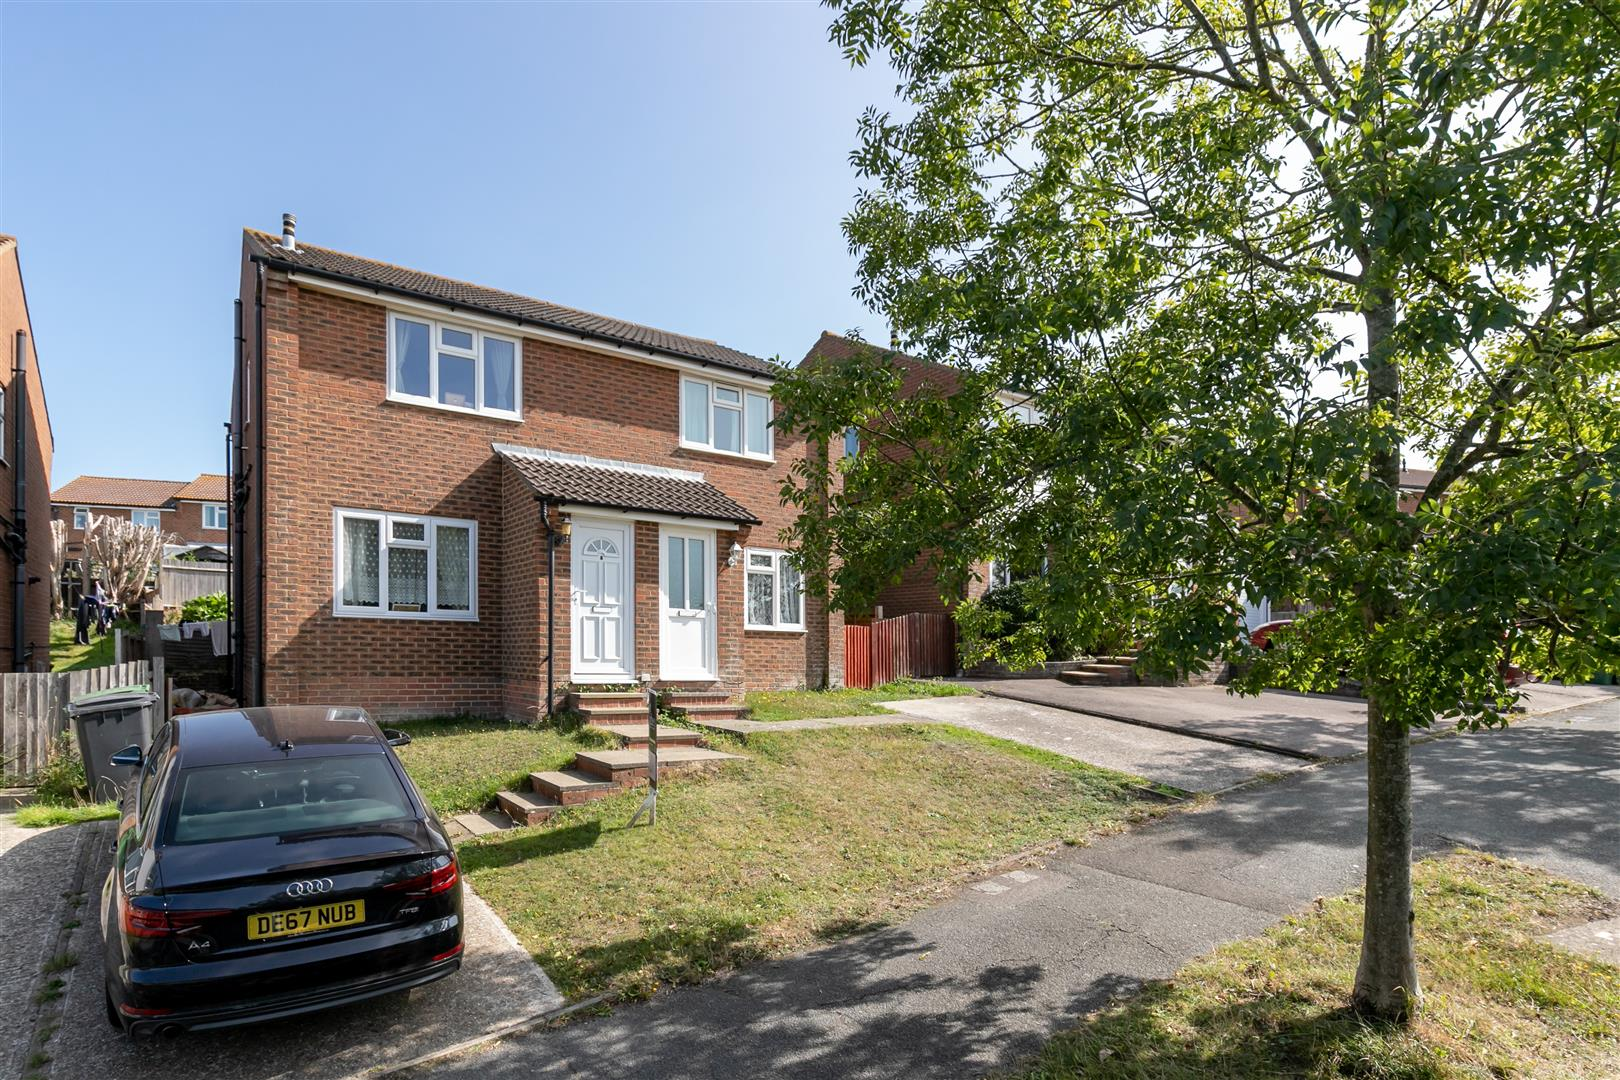 2 bed house for sale in Field Way, St. Leonards-On-Sea, TN38